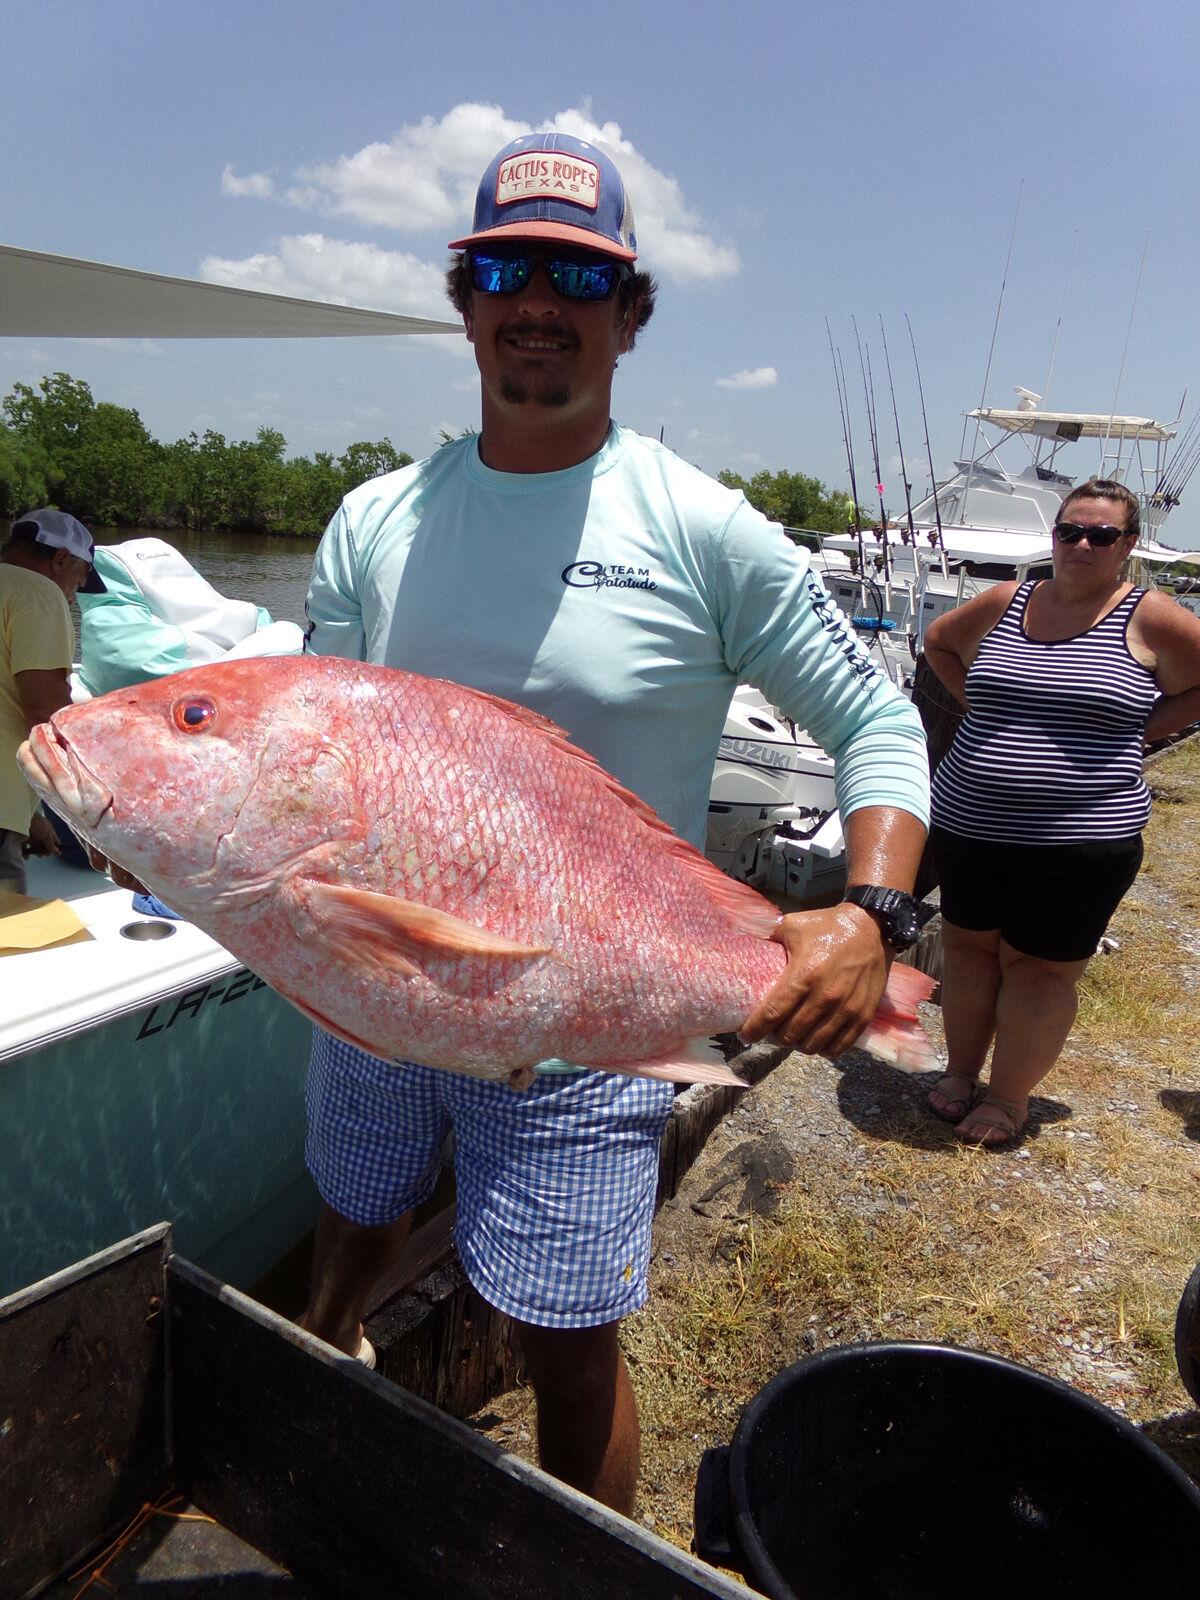 OVERTIME OUTDOORS: New study proves area anglers right: There are beaucoup red snapper in Gulf